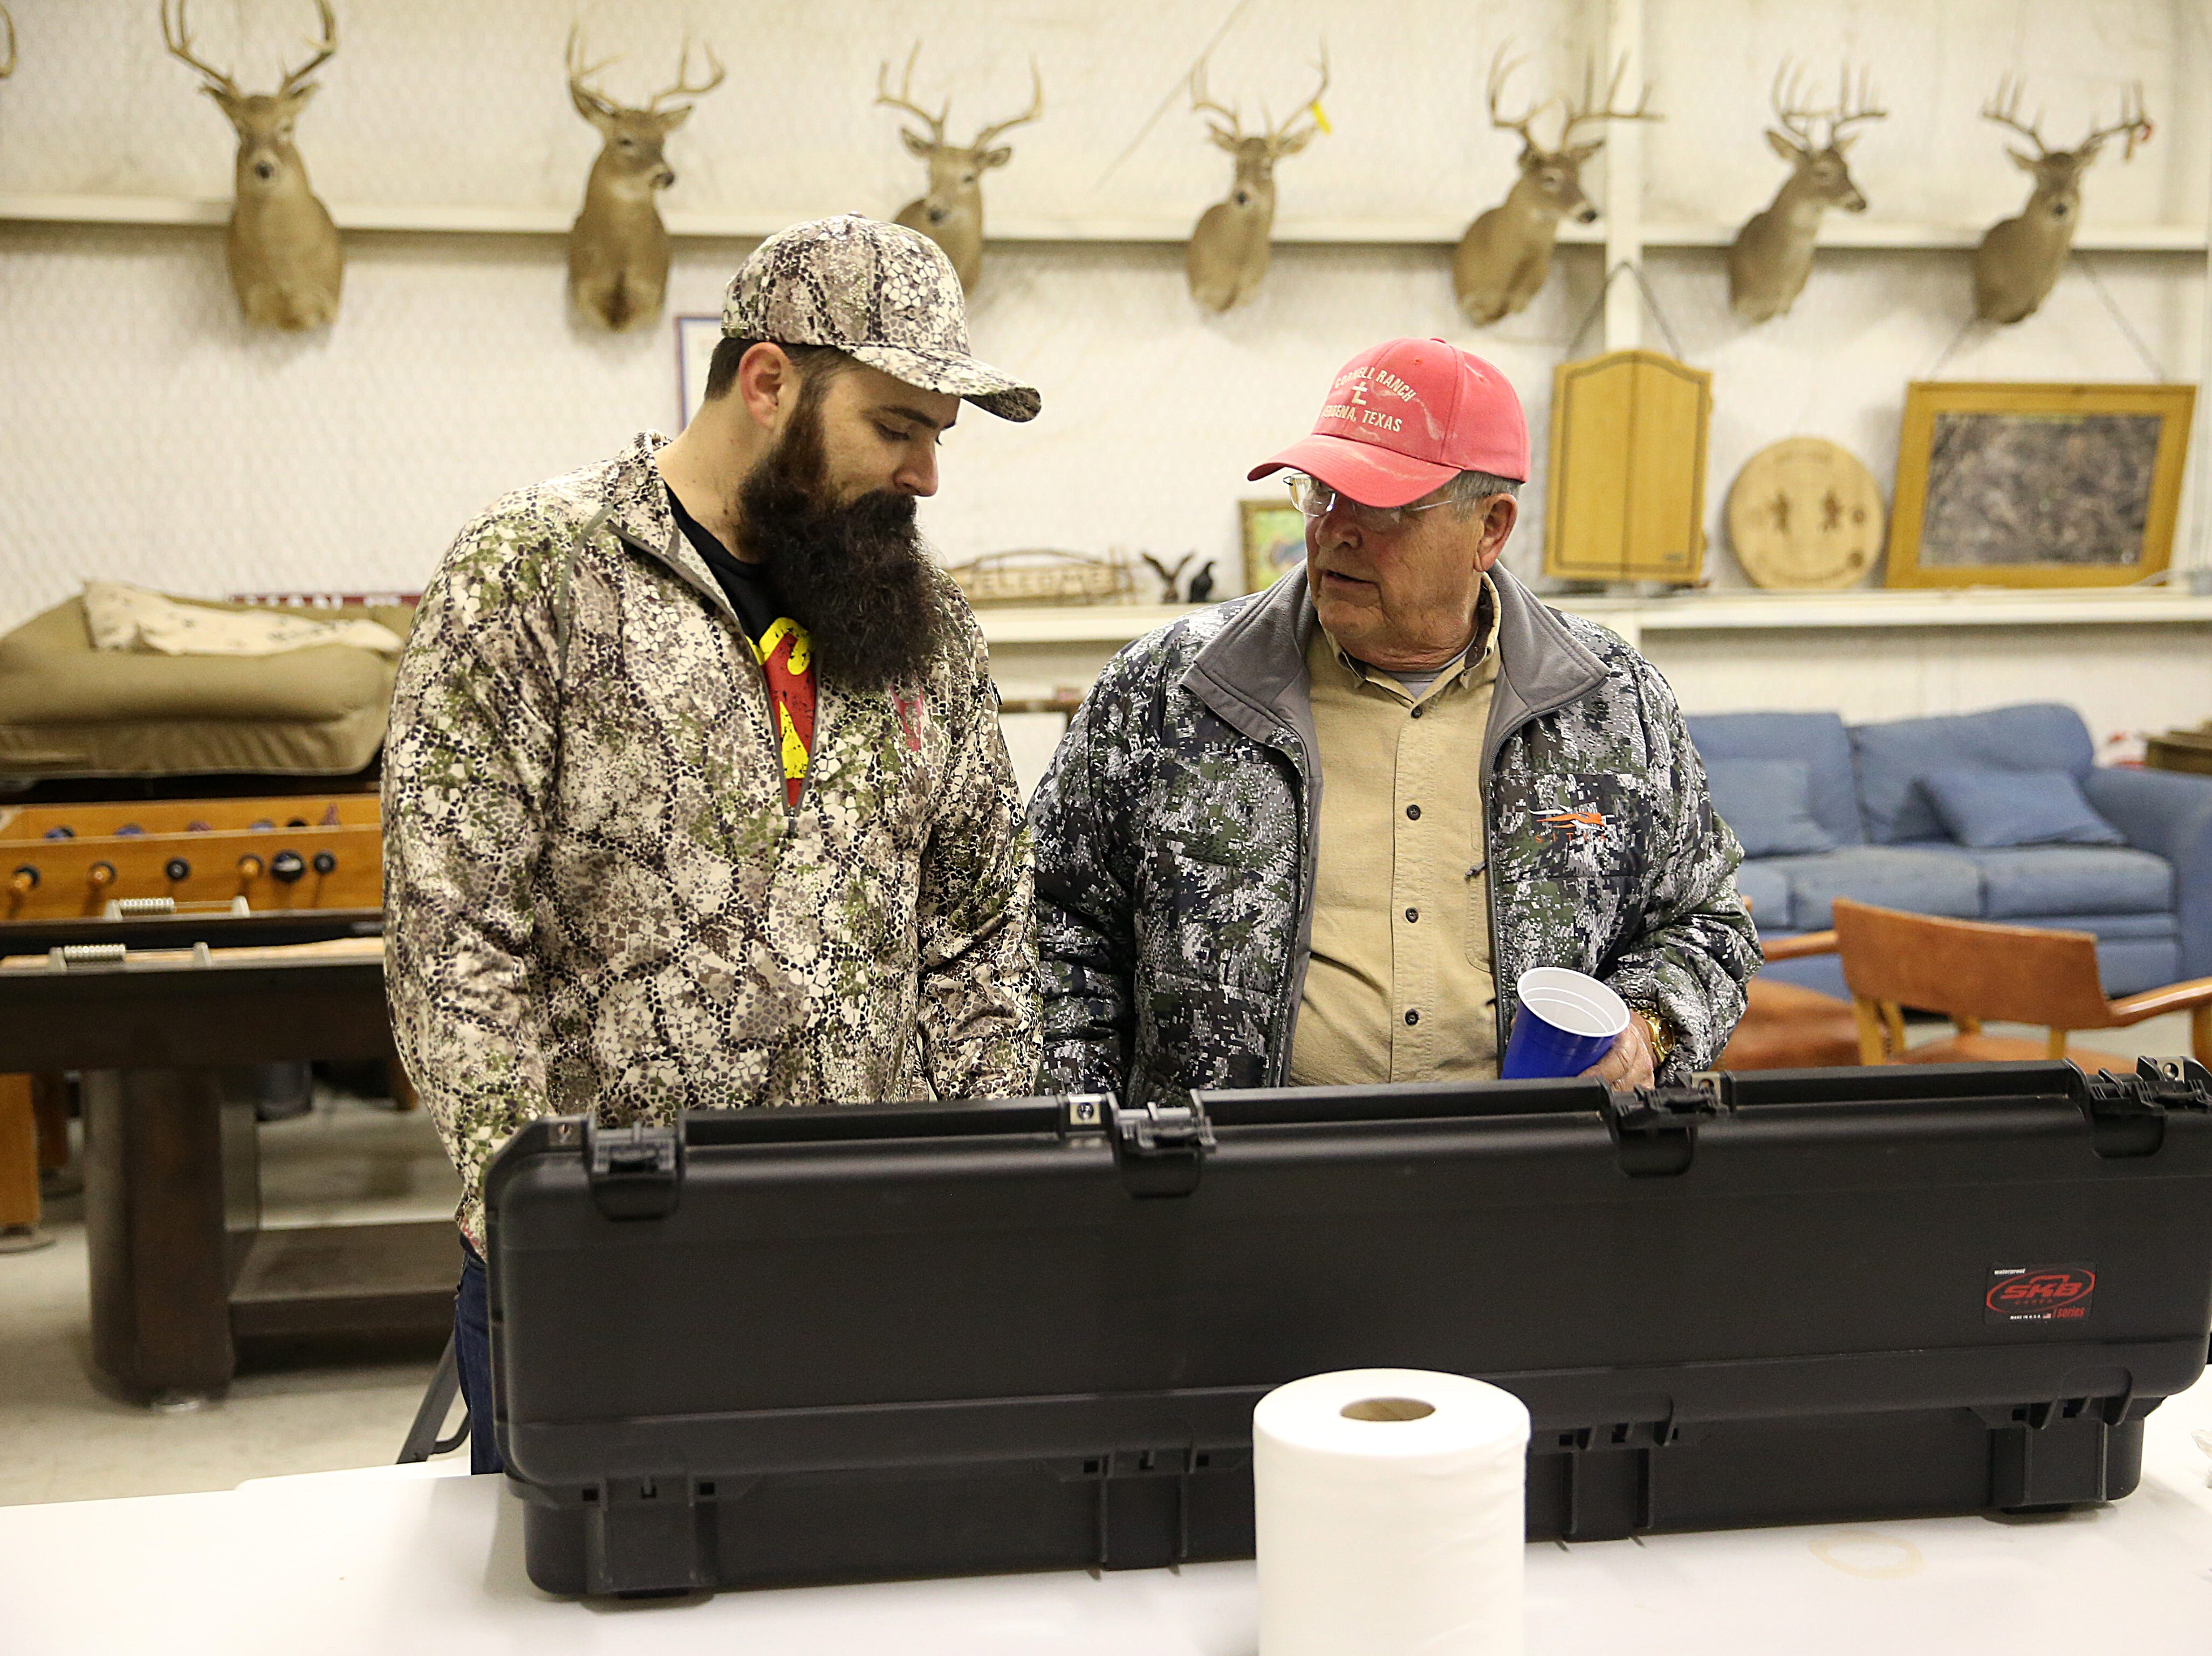 Joseph Lewis (left) shows off his new rifle to Mike Cornell during the annual deer hunt for veterans in Christoval on Friday, Dec. 7, 2018 sponsored by San Angelo Support for Veterans and Lone Star Warriors Outdoors.